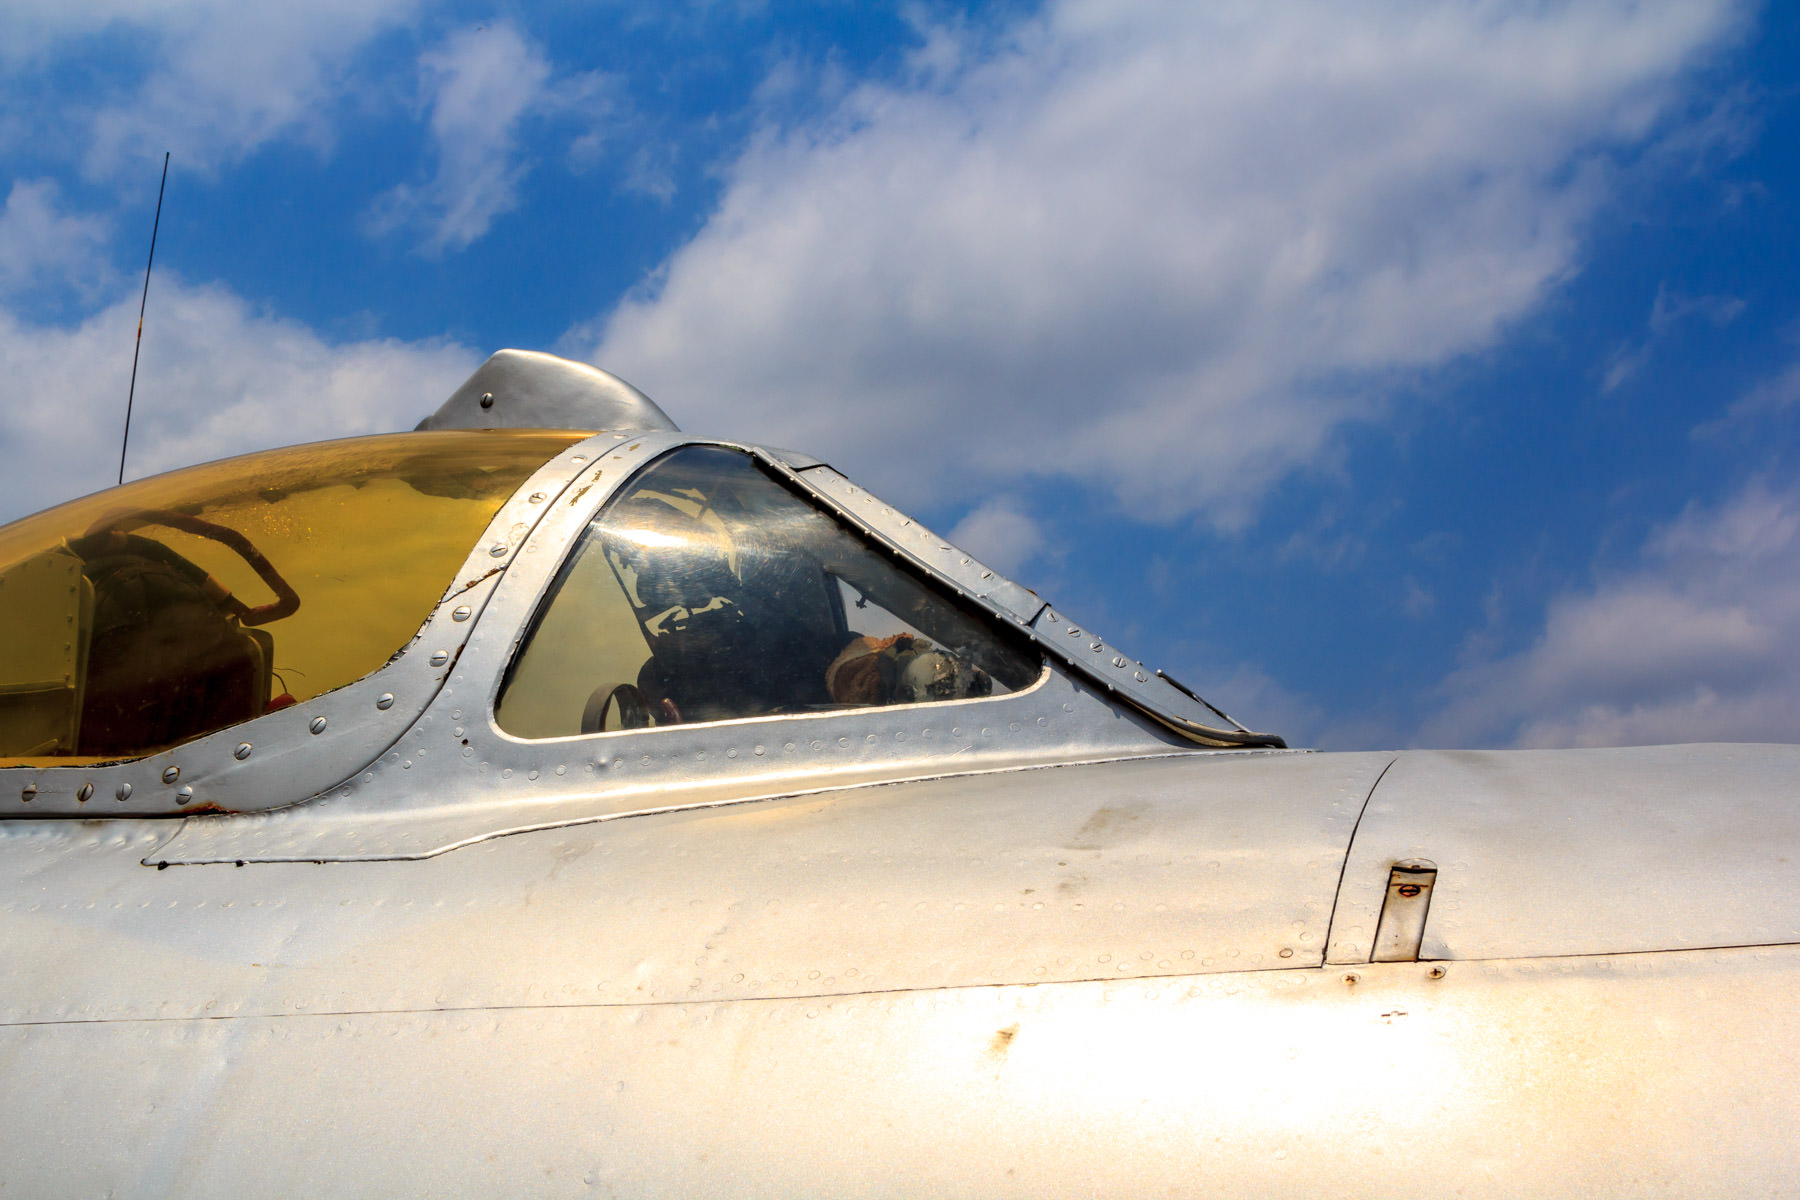 Detail of the cockpit canopy of a Mikoyan-Gurevich MiG-17 at Addison, Texas' Cavanaugh Flight Museum.